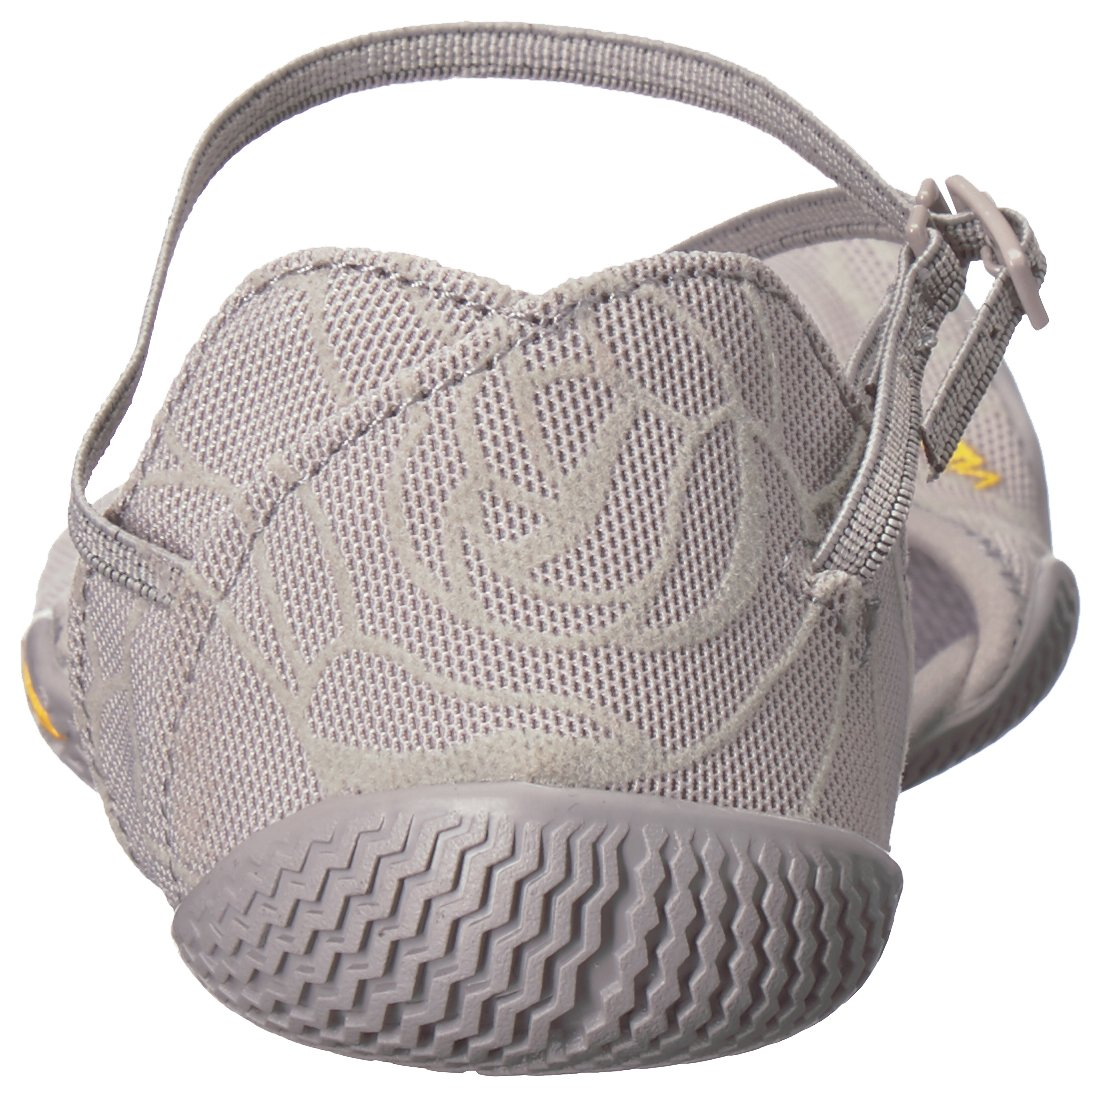 Vibram Women's VI-S Fitness and Yoga Shoe B071KBZTGP B 42 EU/9-9.5 M US B B071KBZTGP EU (42 EU/9-9.5 US US)|Grey 8a31d7